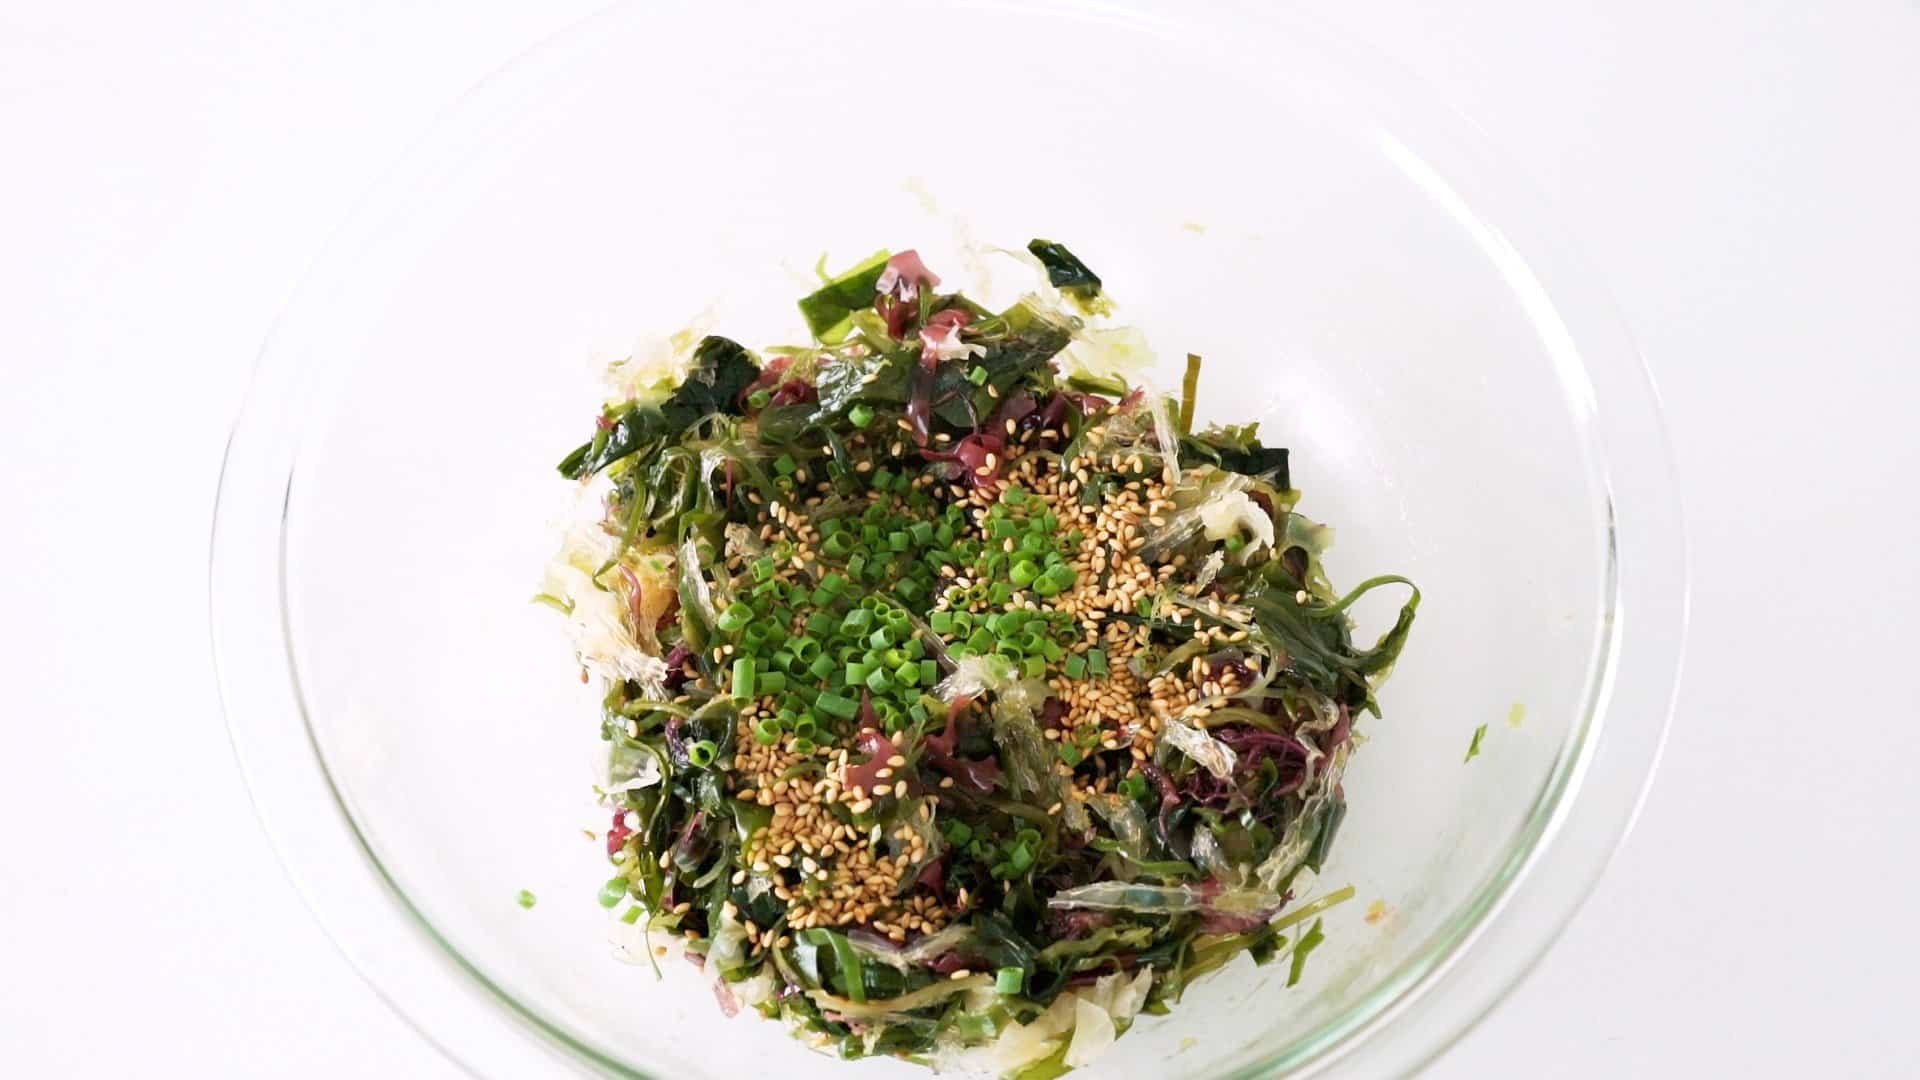 Seaweed salad mixed together with dress, sesame seeds and scallions in a glass bowl.